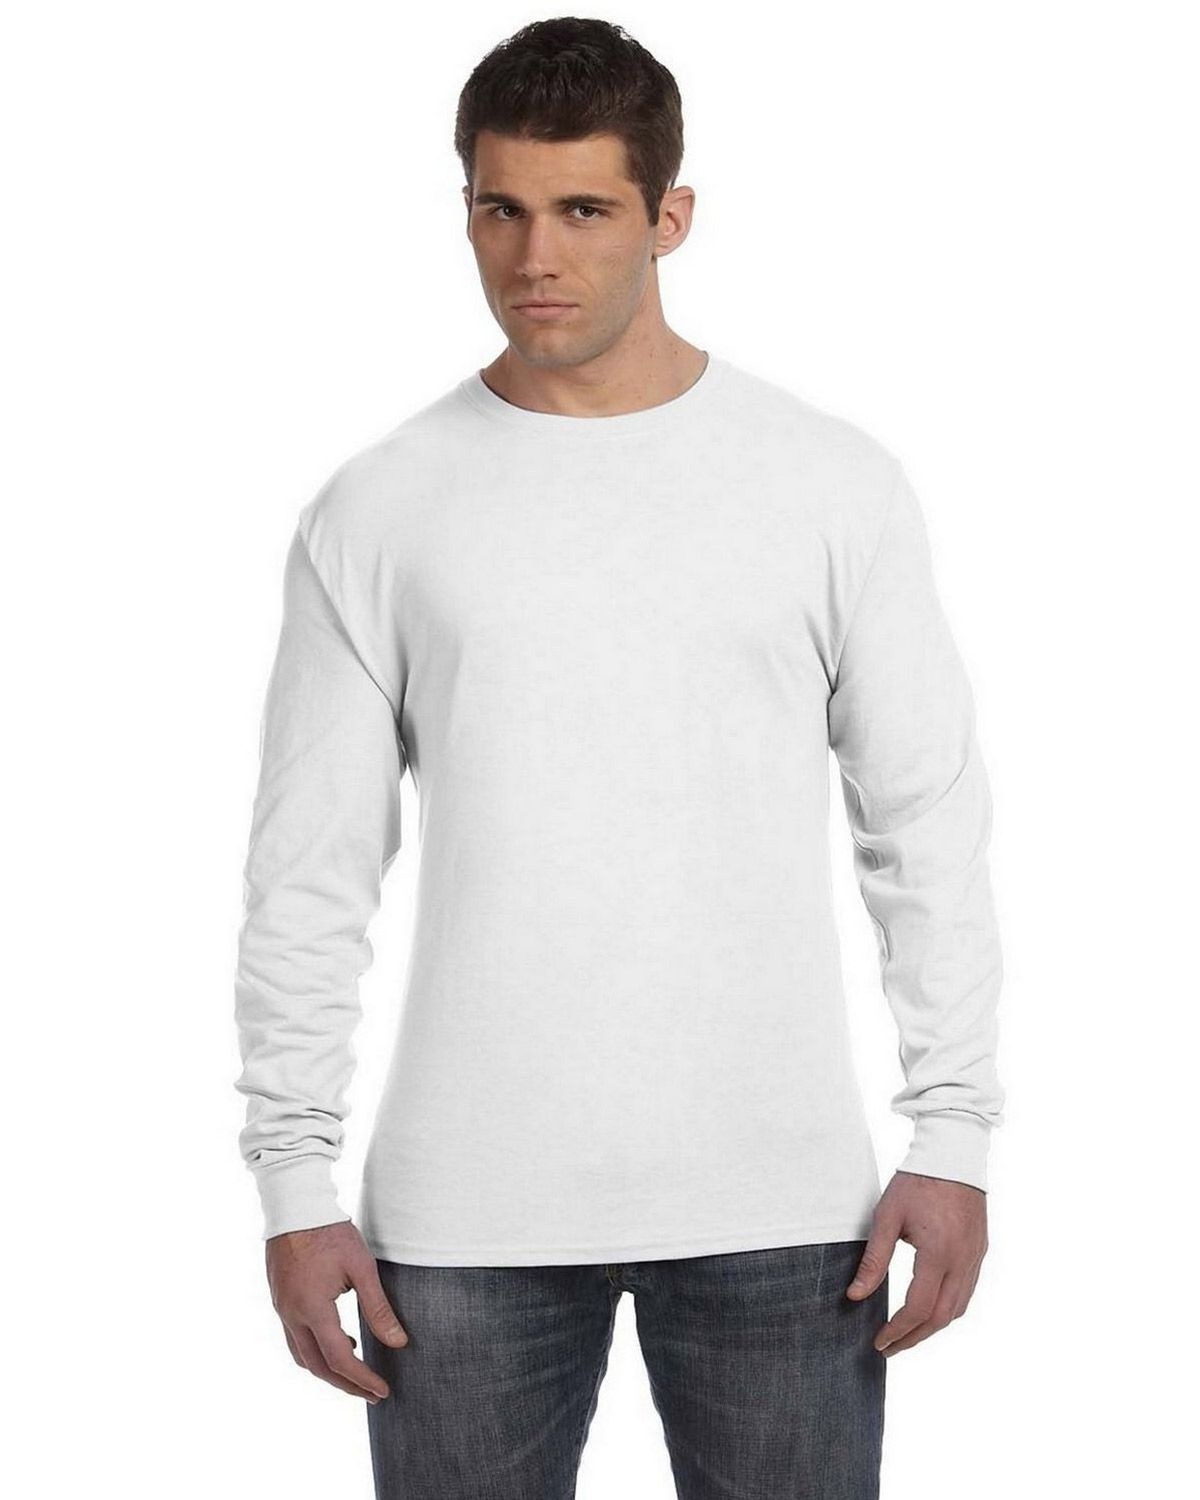 e031ce9bae4 Buy Hanes 498L 100% Ringspun Cotton Nano-T Long Sleeve T Shirt